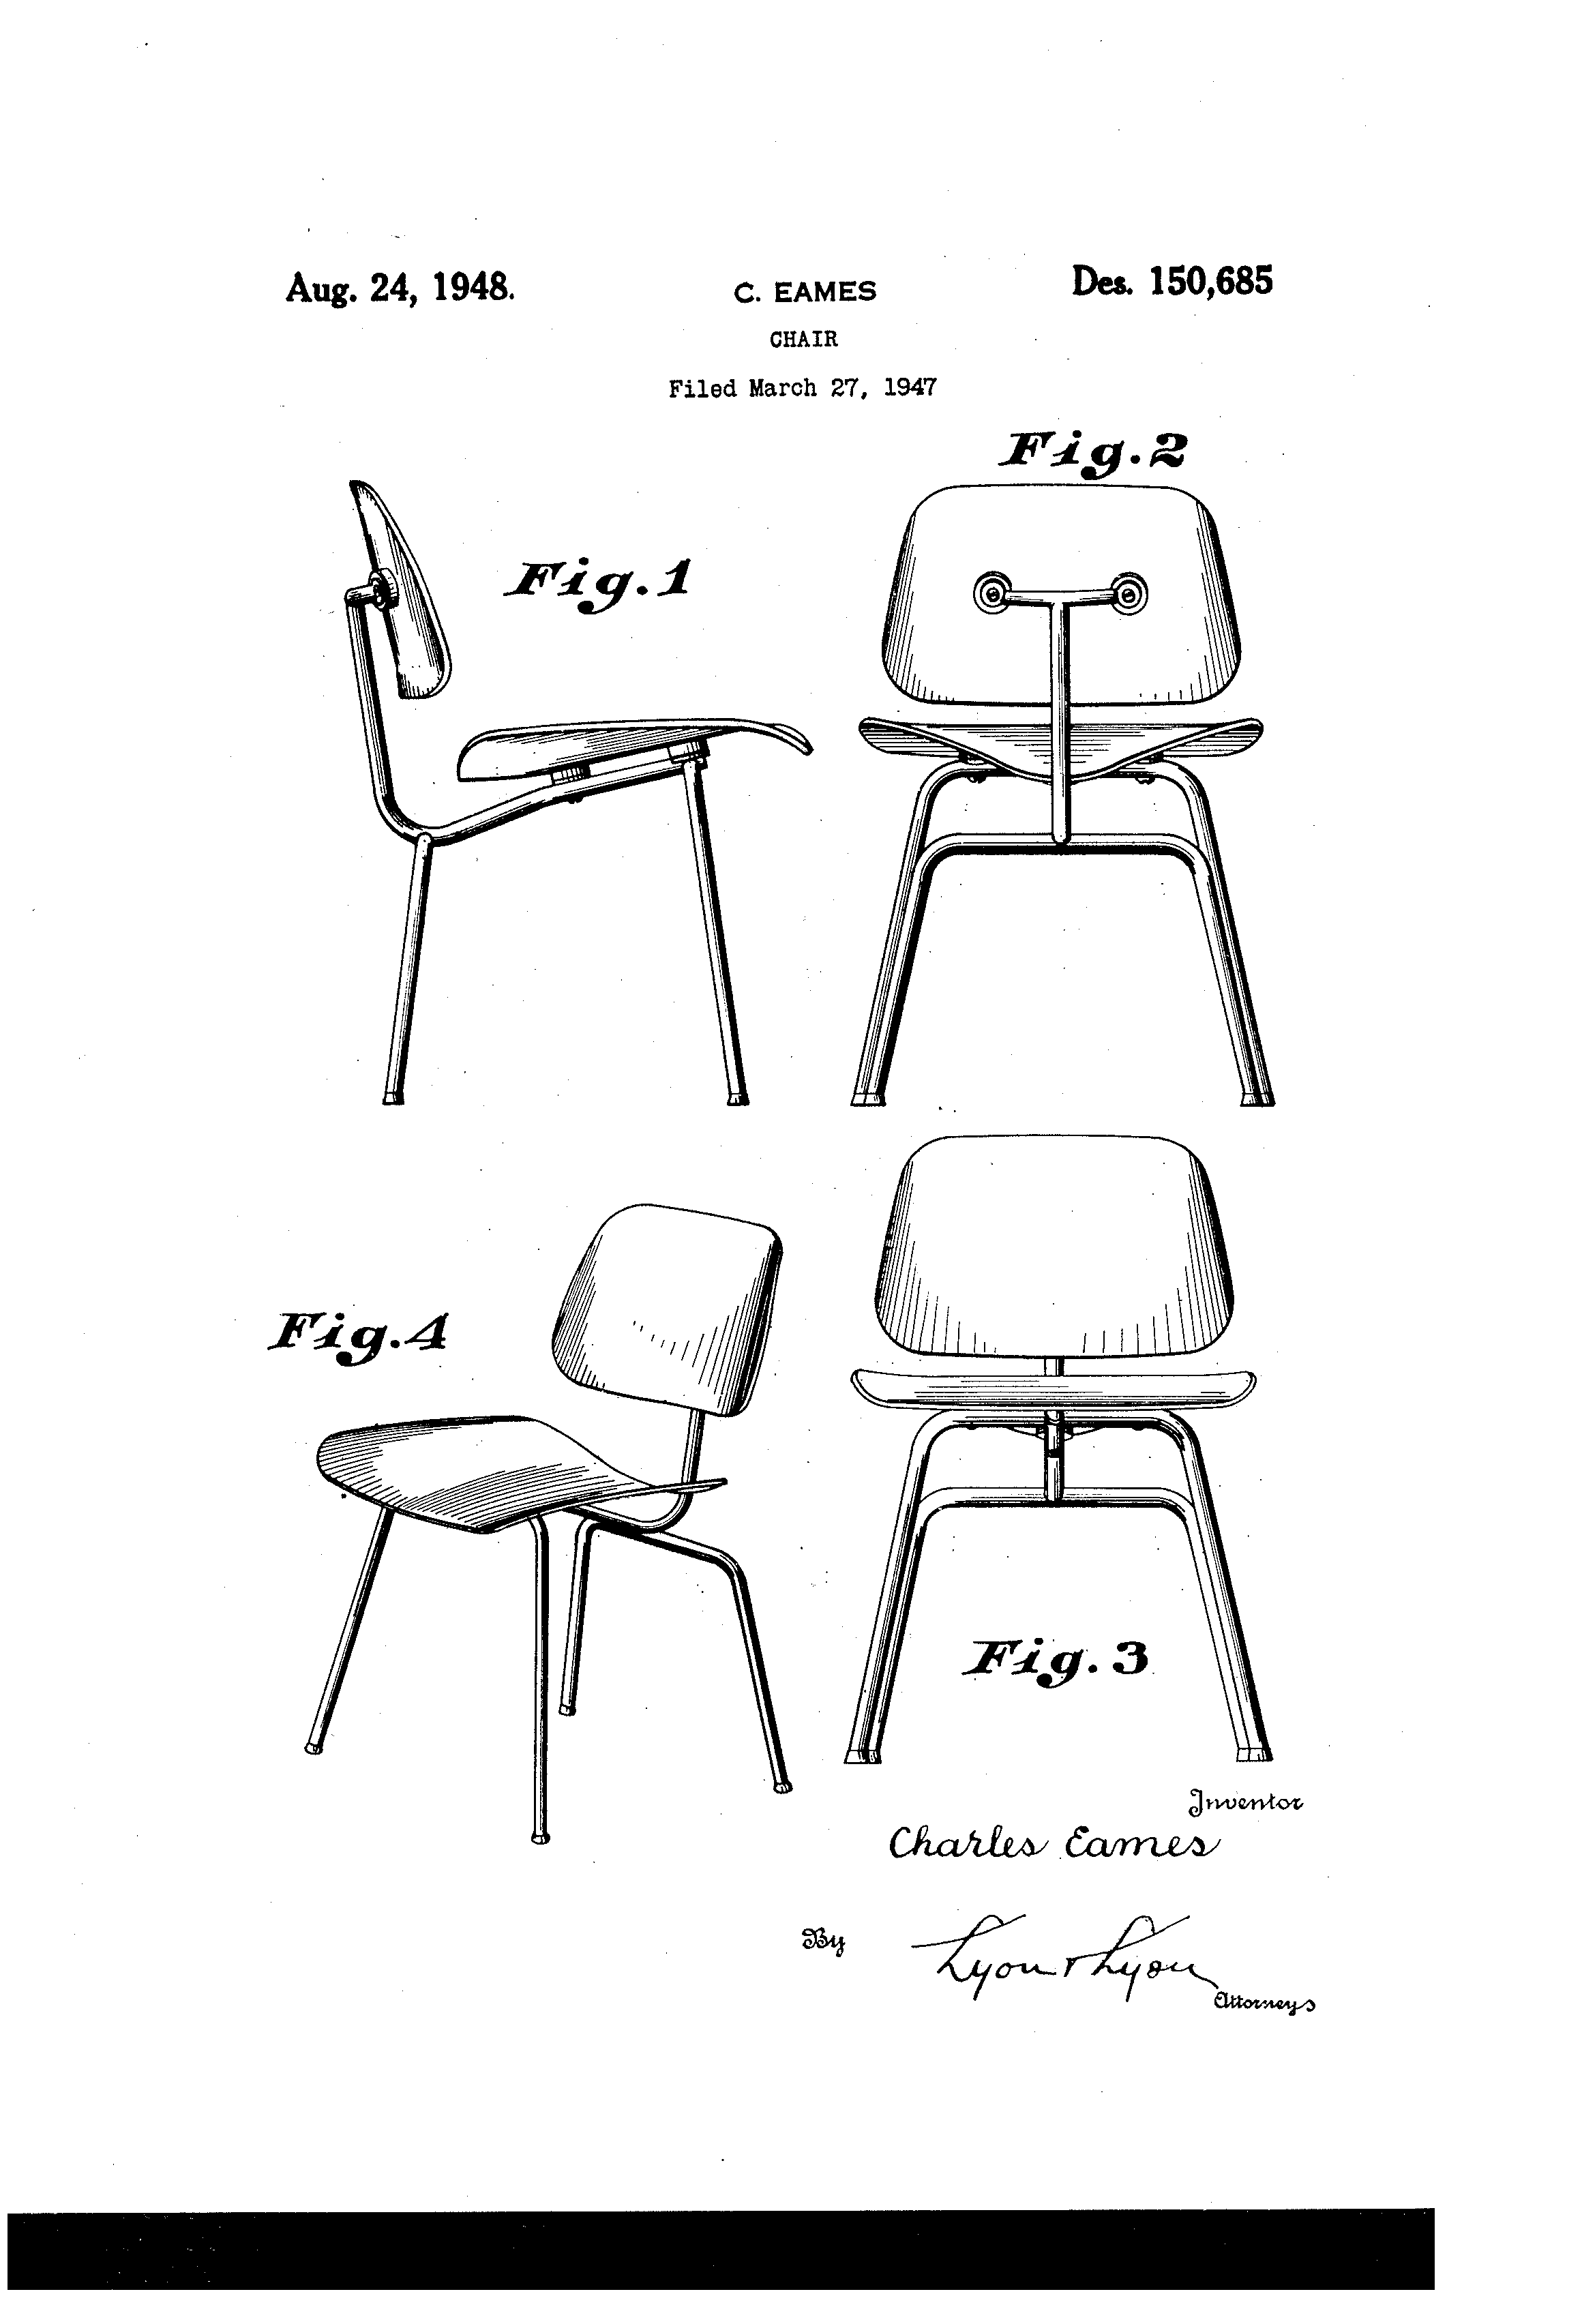 Eames Chair Patent Patent Usd150685 Design For A Chair Google Patents